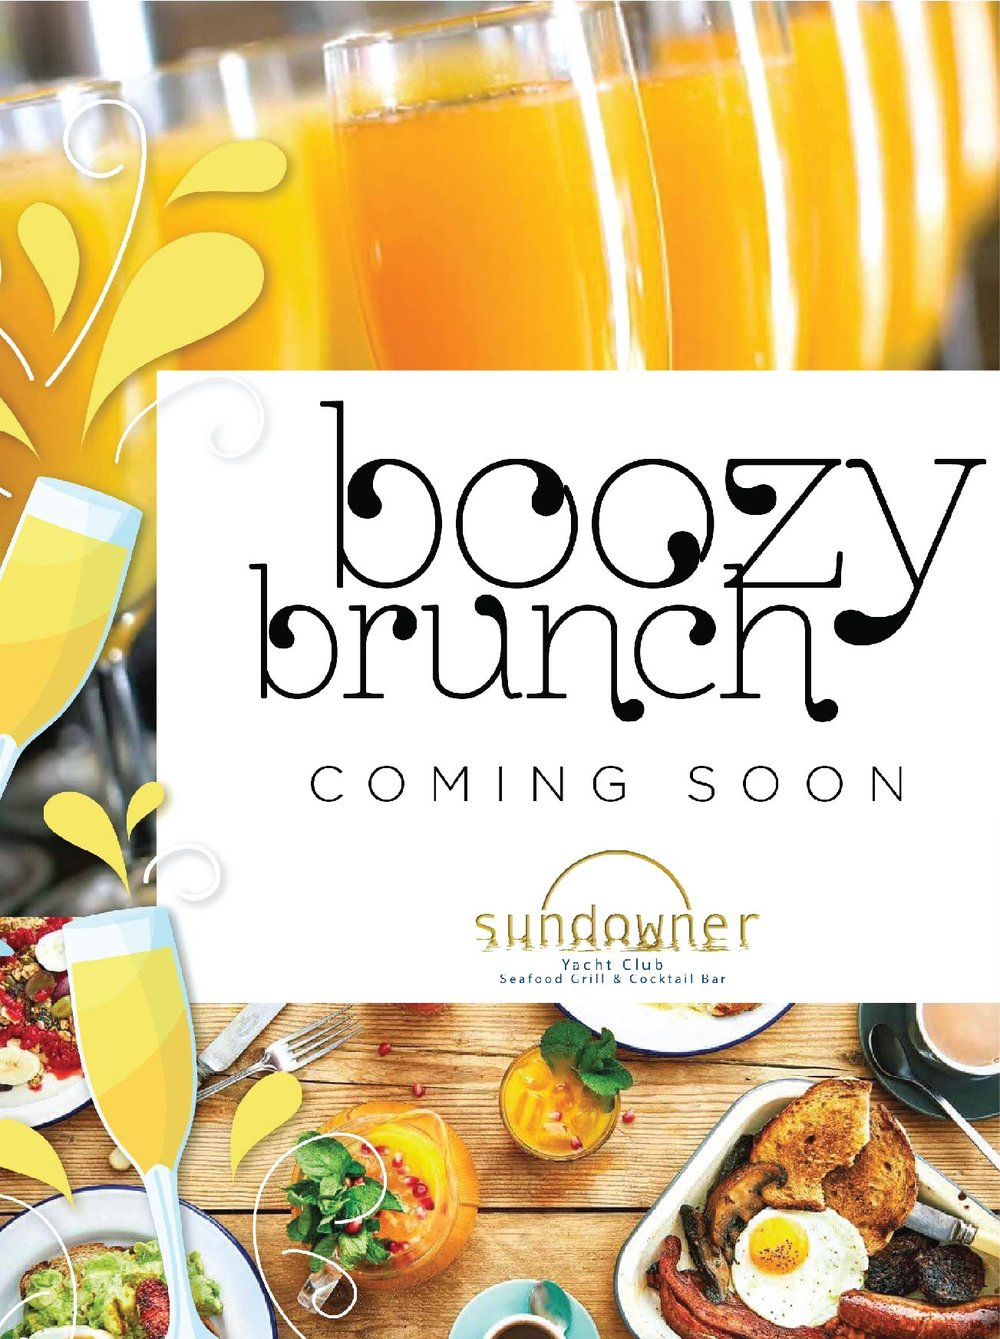 sundowner boozy brunch